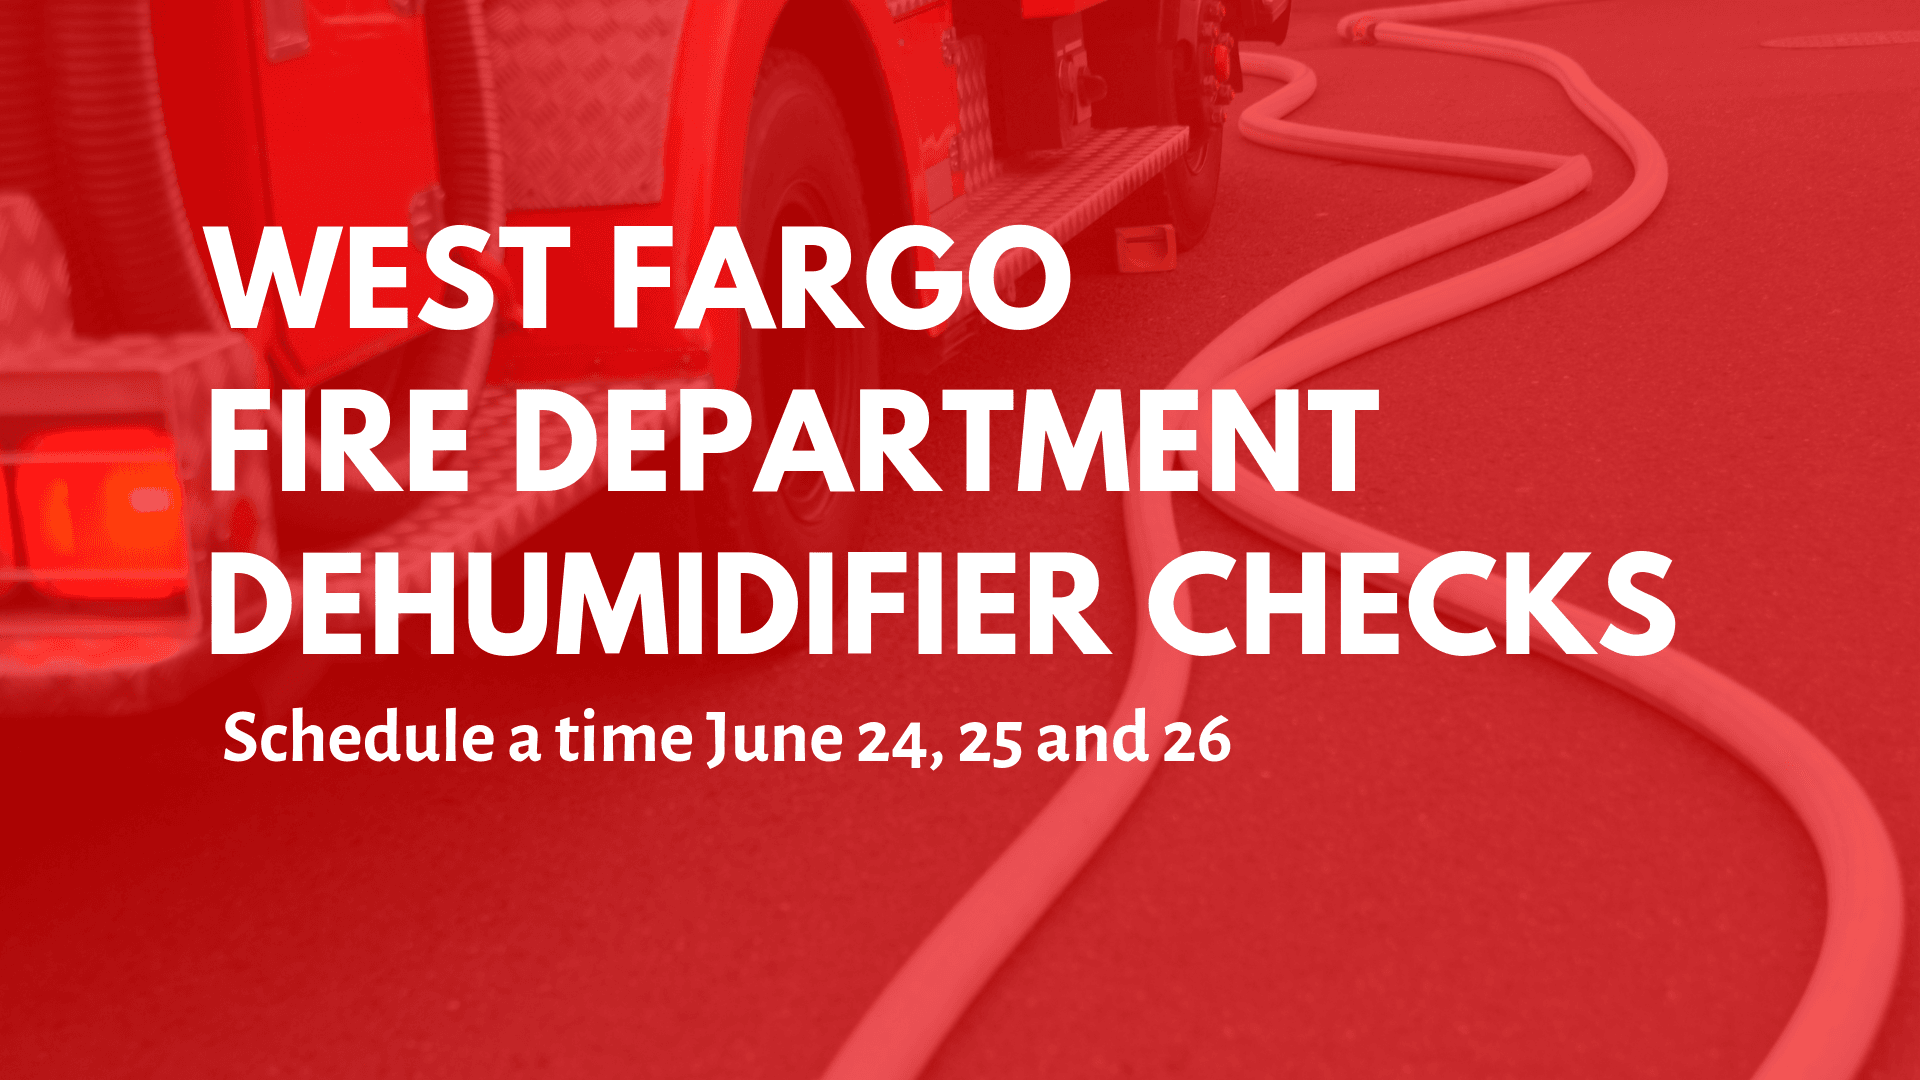 WFFD Dehumidifier Checks